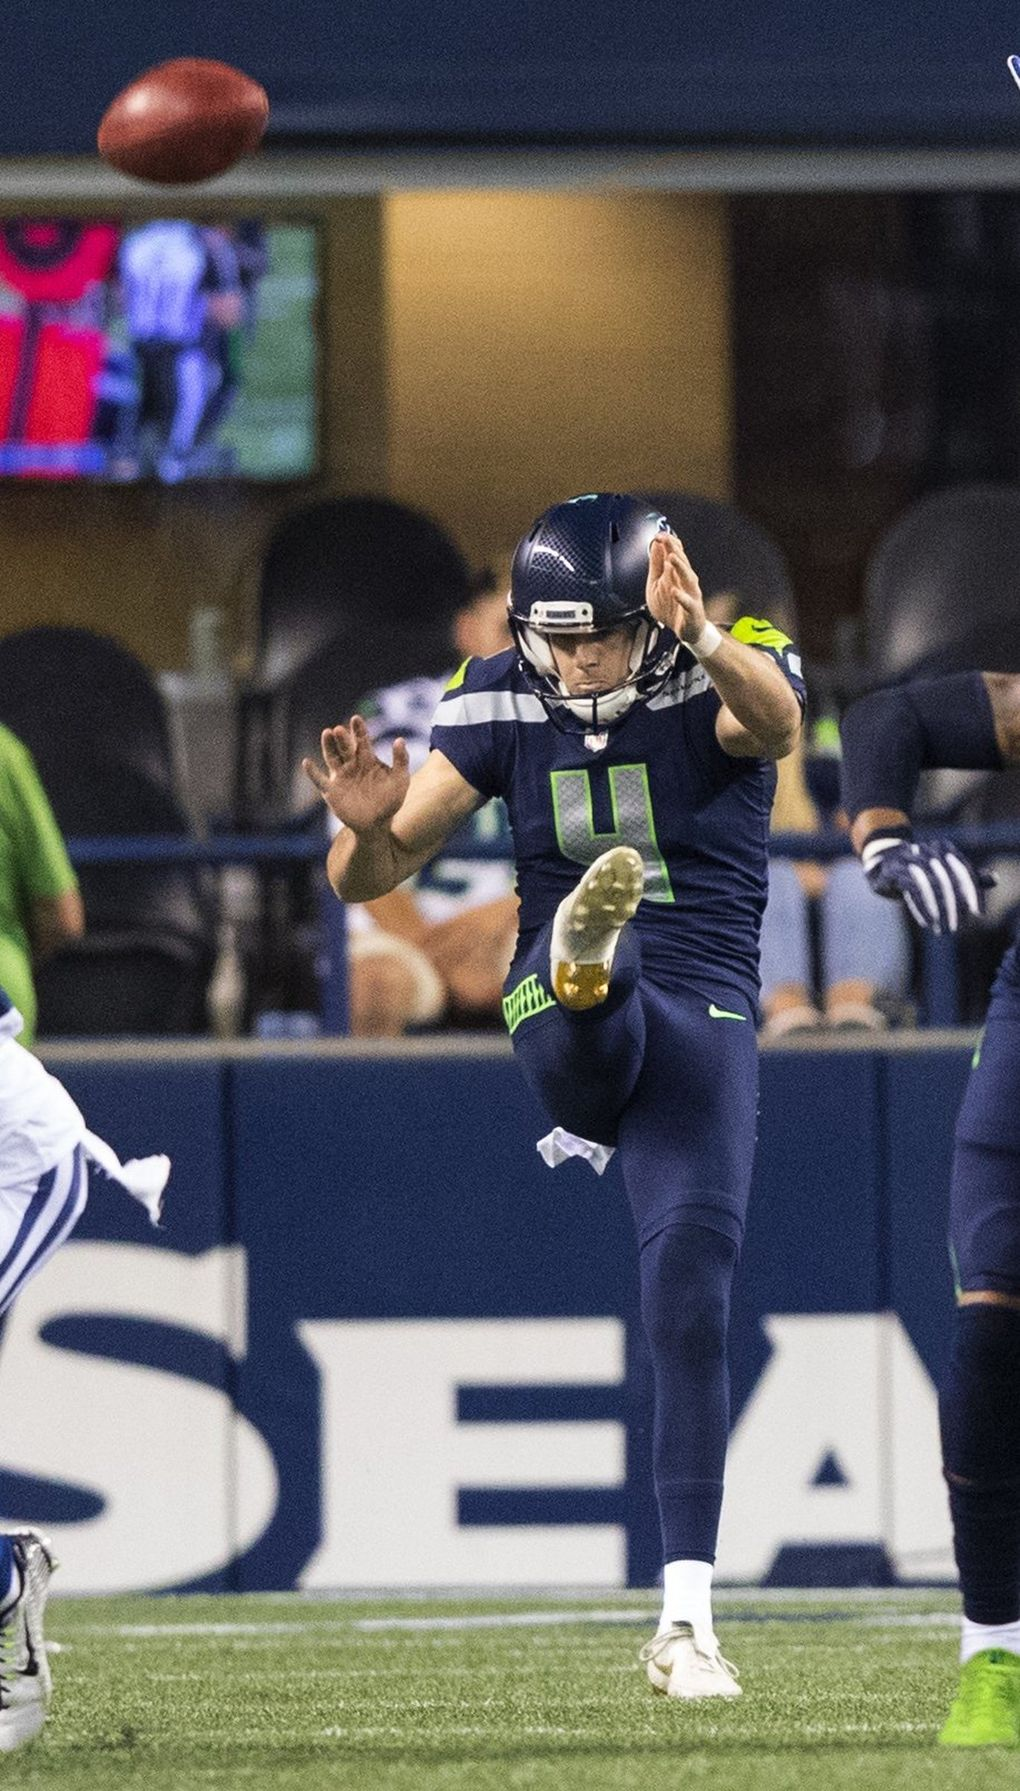 Seattle Seahawks punter Michael Dickson (4) punts during 4th quarter action as the Seattle Seahawks play the Indianapolis Colts on Thursday. (Mike Siegel / The Seattle Times)